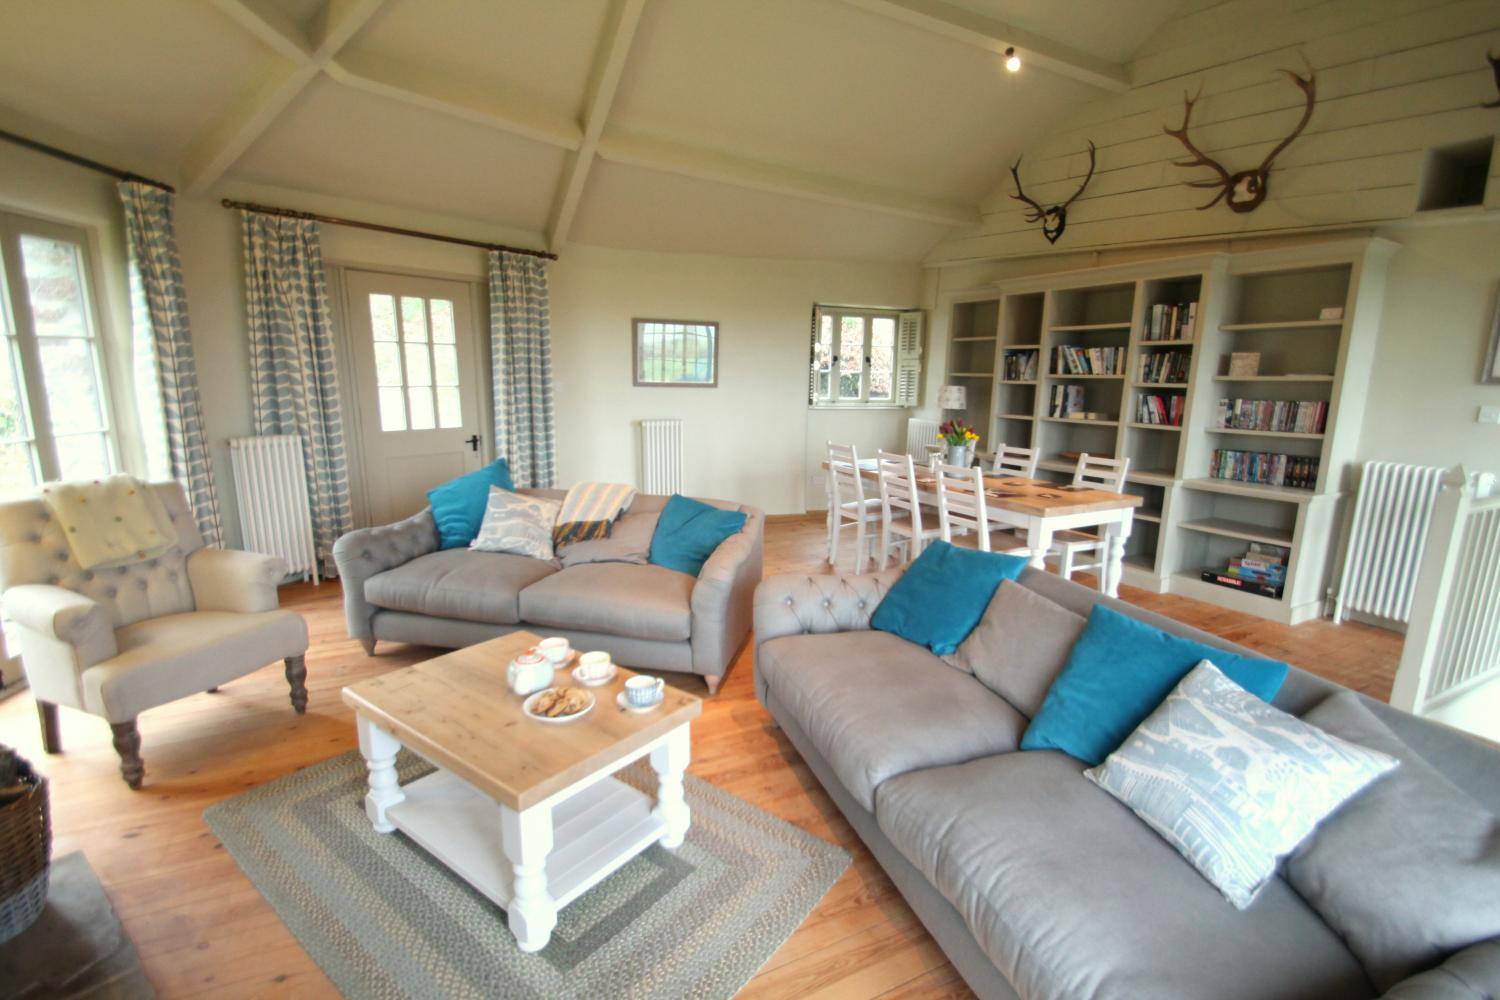 The Roundhouse living room is well stocked with books, games and DVDs for you to enjoy during your stay.